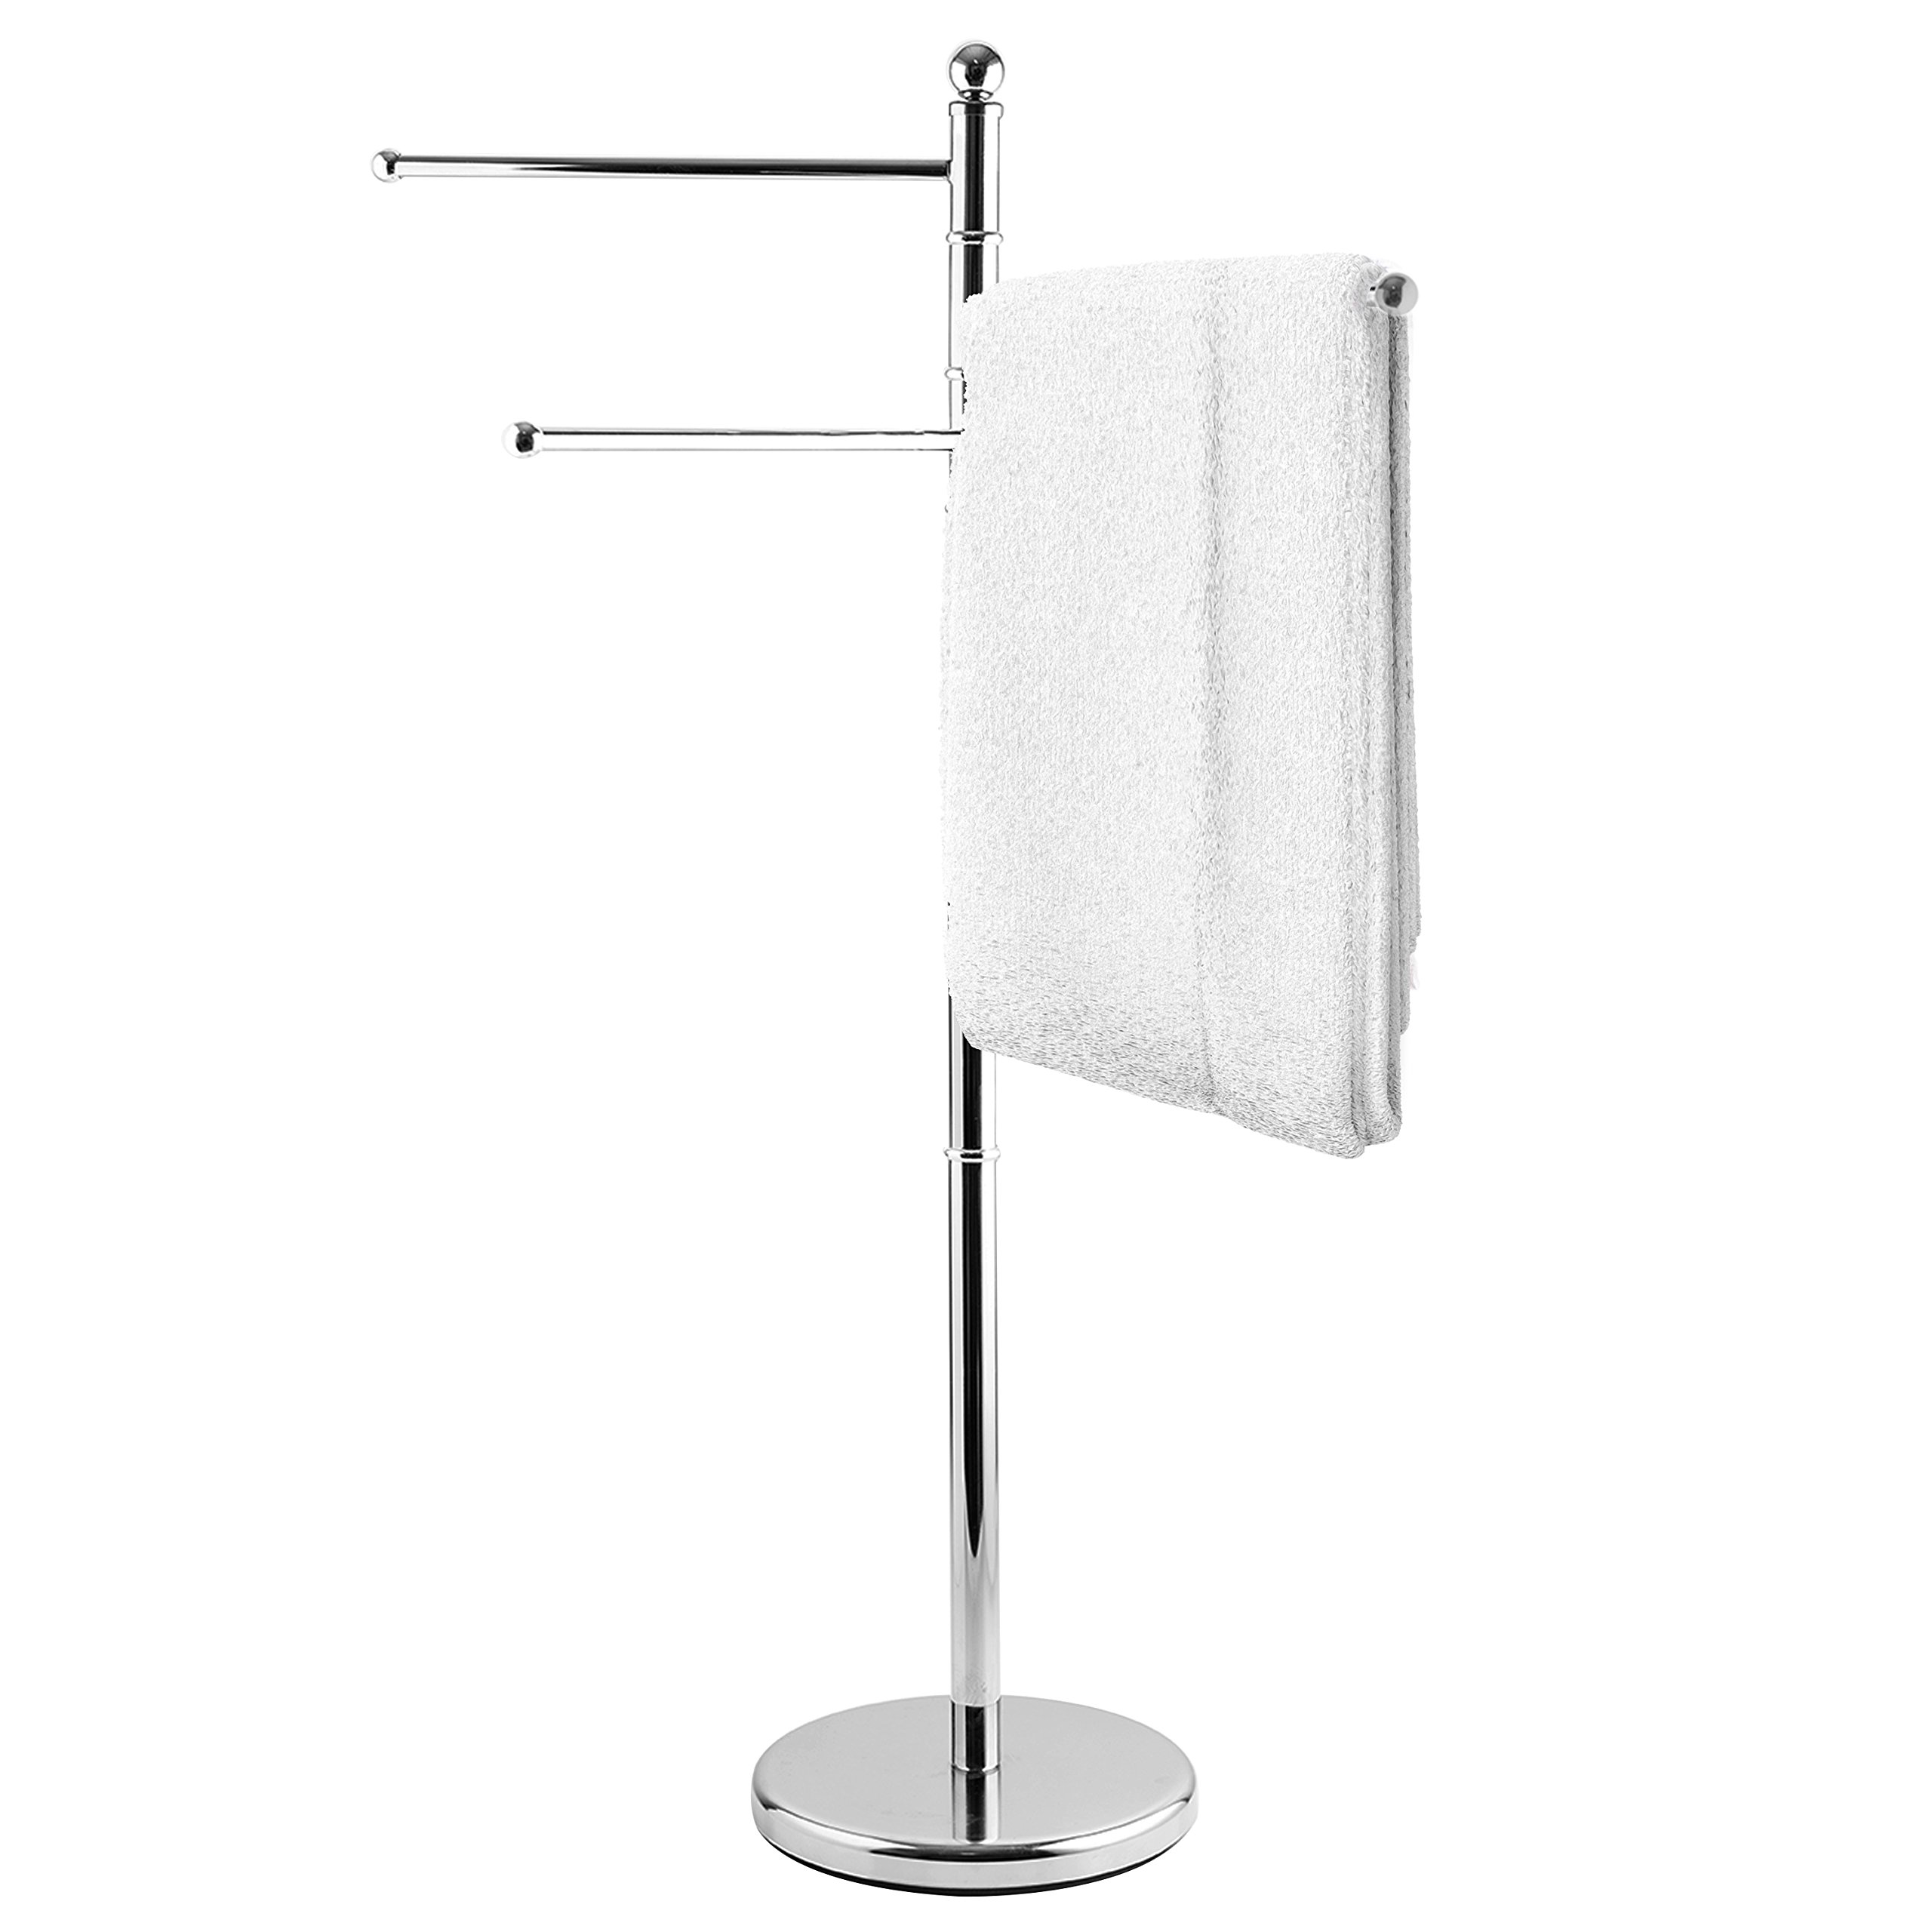 Mygift 40 inch standing stainless steel bathroom towel kitchen towel rack stand with 3 swivel arms